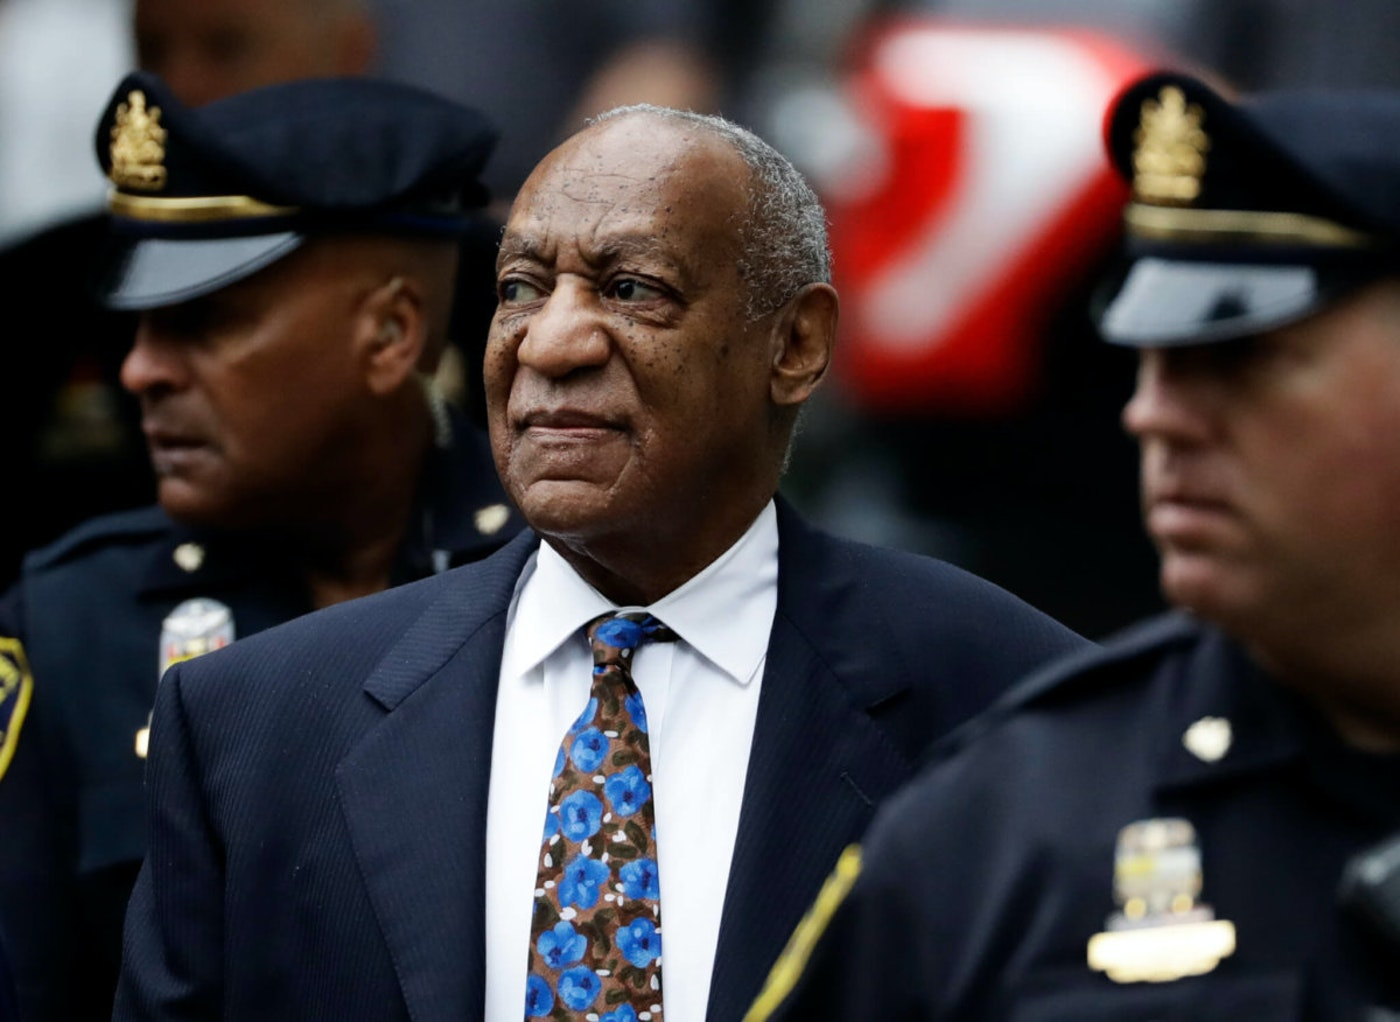 FILE - In this Sept. 24, 2018 file photo, Bill Cosby arrives for his sentencing hearing at the Montgomery County Courthouse, in Norristown, Pa. Pennsylvania's highest court has overturned comedian Bill Cosby's sex assault conviction. The court said Wednesday that they found an agreement with a previous prosecutor prevented him from being charged in the case. (AP Photo/Matt Slocum, File)